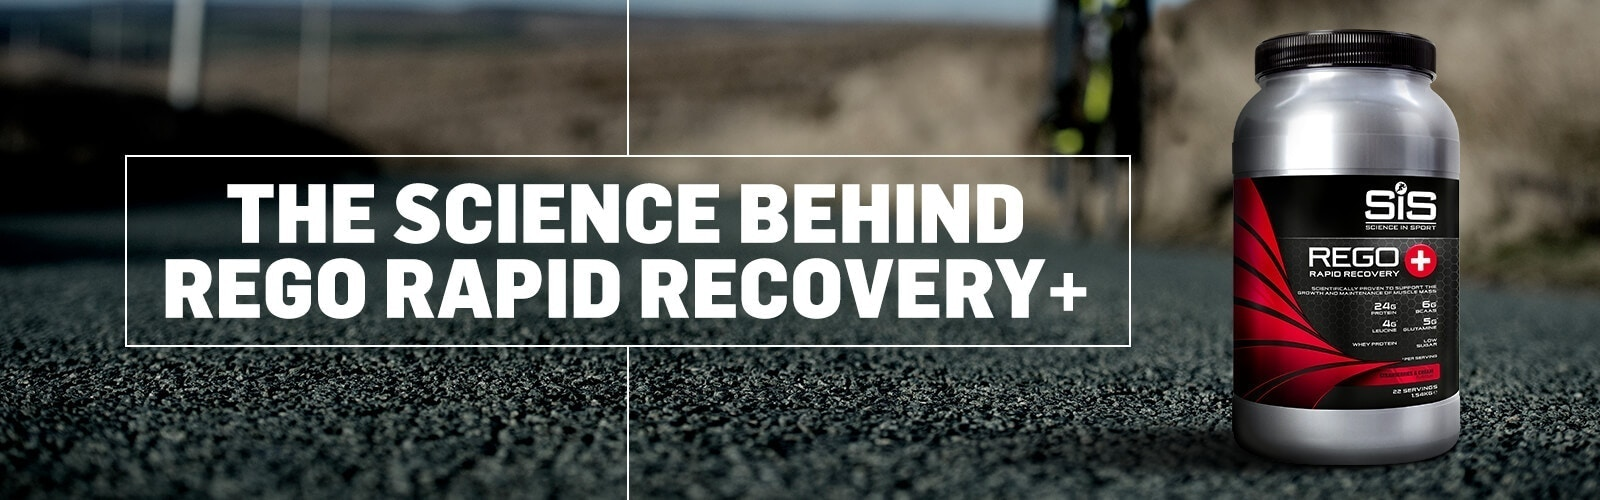 SIS - The science behind Rego Rapid Recovery Plus